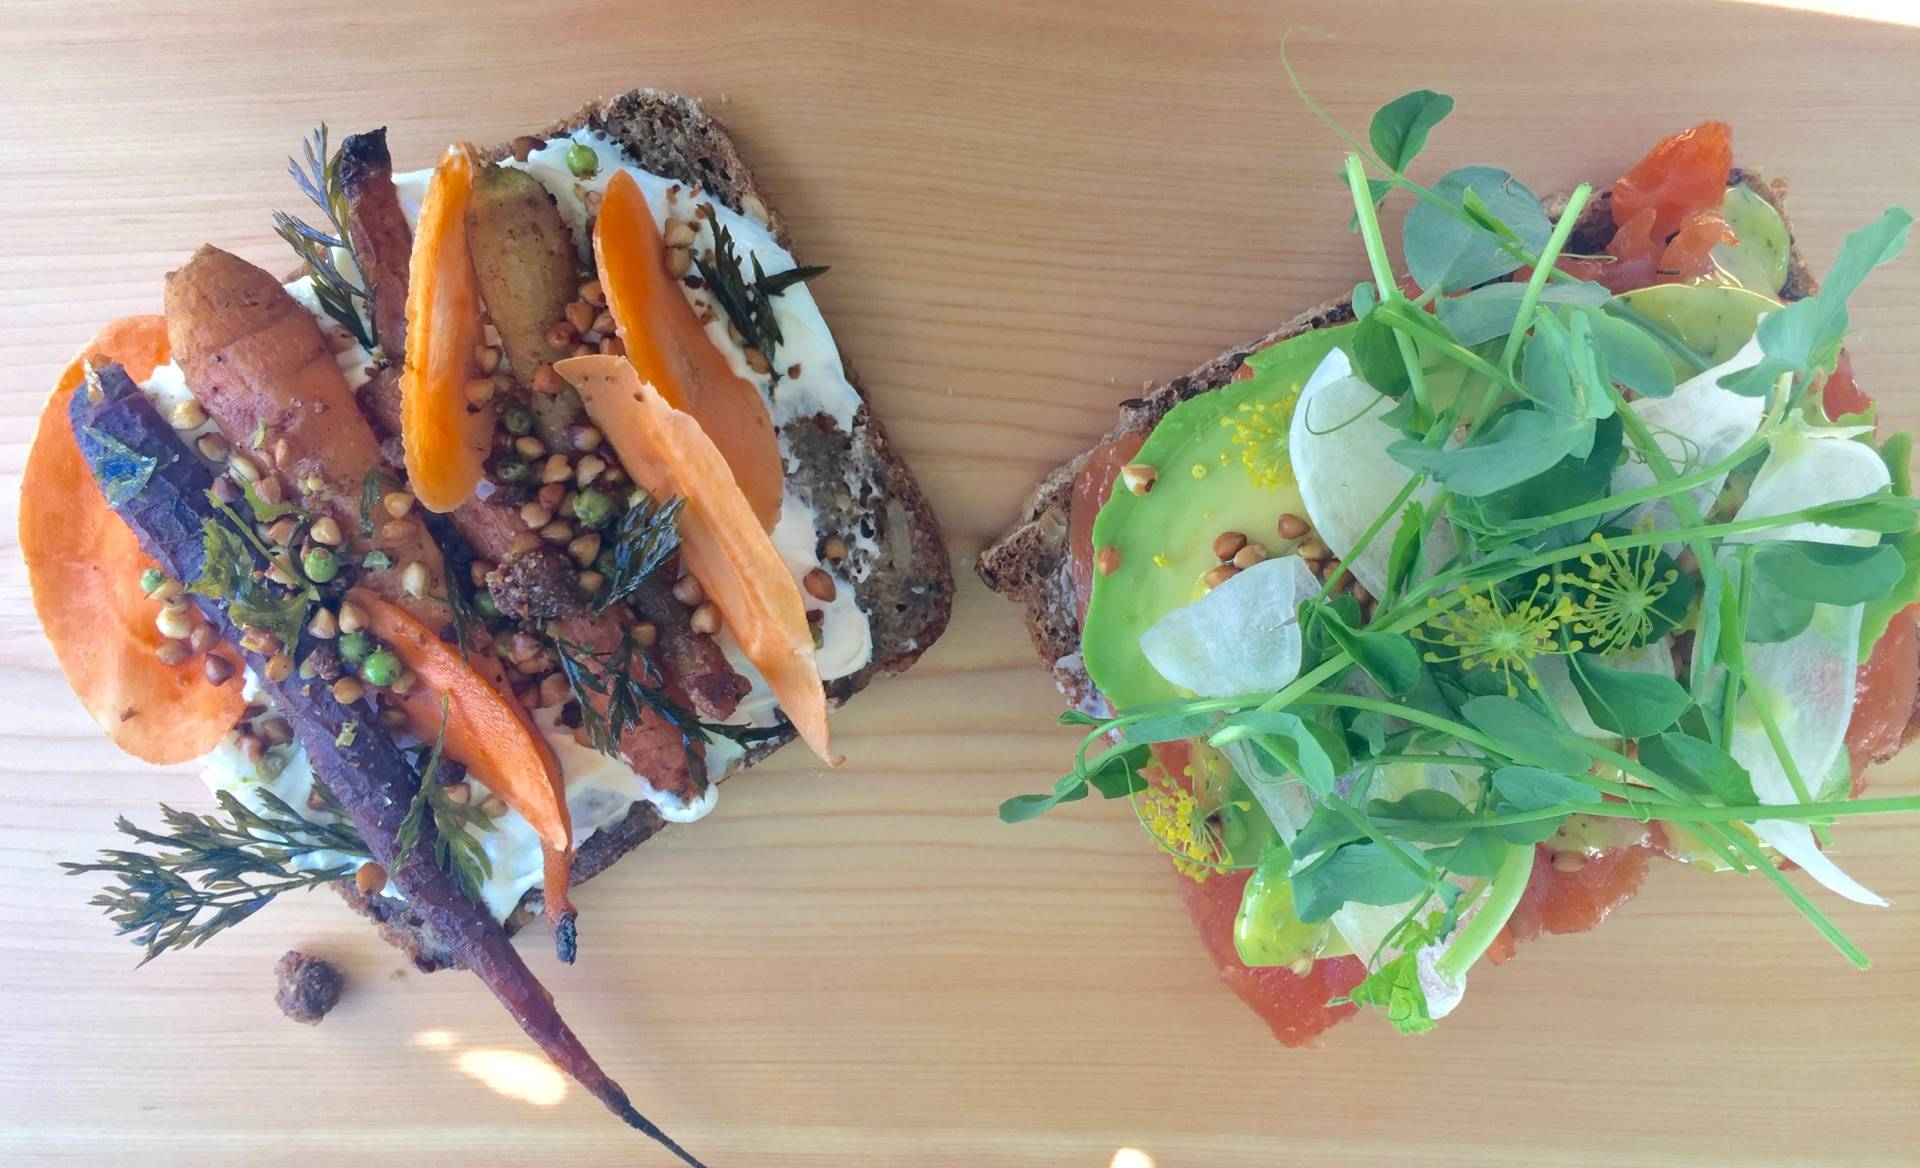 (L) Roasted pomegranate-cured carrots, toasted buckwheat,  tahini and lebna, crispy carrot greens and (R) salmon, avocado, icicle radishes, micro greens, dill honey mustard, flowering fennel. Both smørrebrød sandwiches created by Kristen Rasmussen on her homemade rye bread.